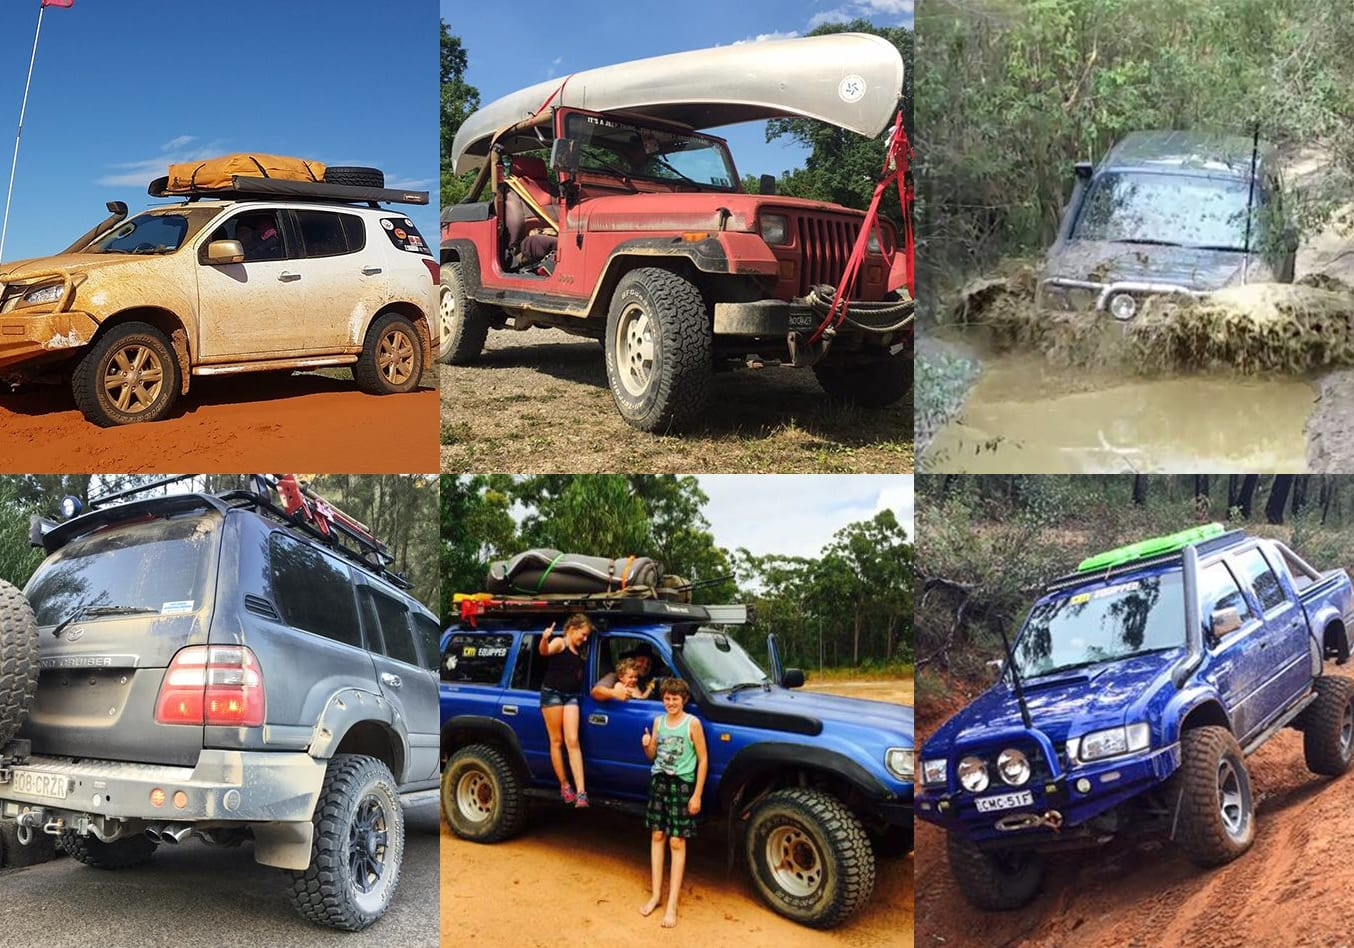 GALLERY: Readers' Rigs, Part 11